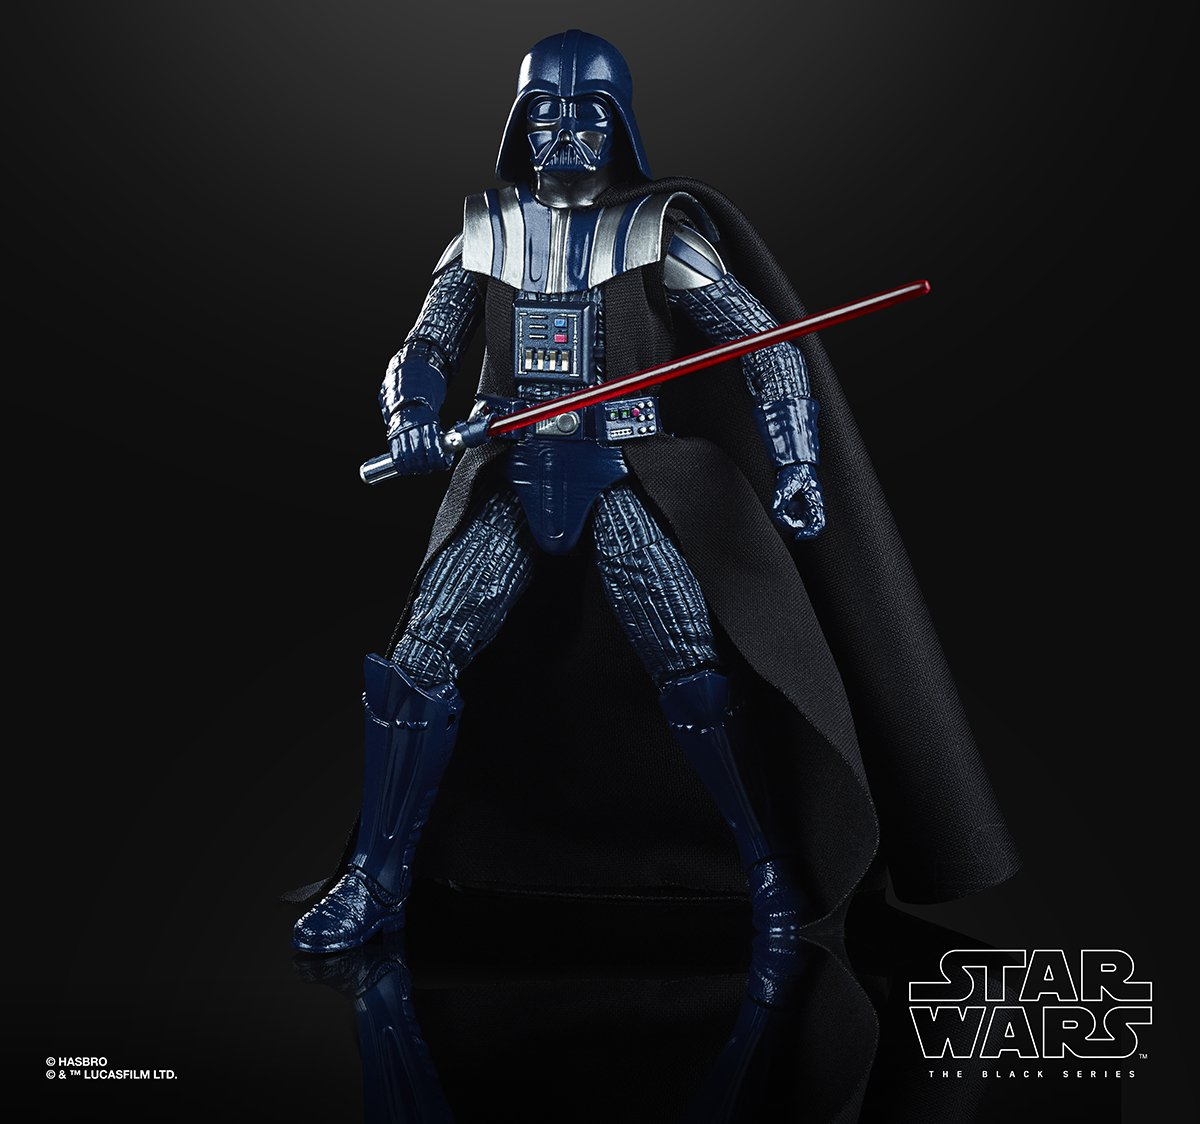 star-wars-the-black-series-carbonized-collection-6-inch-darth-vader-figure-oop-1